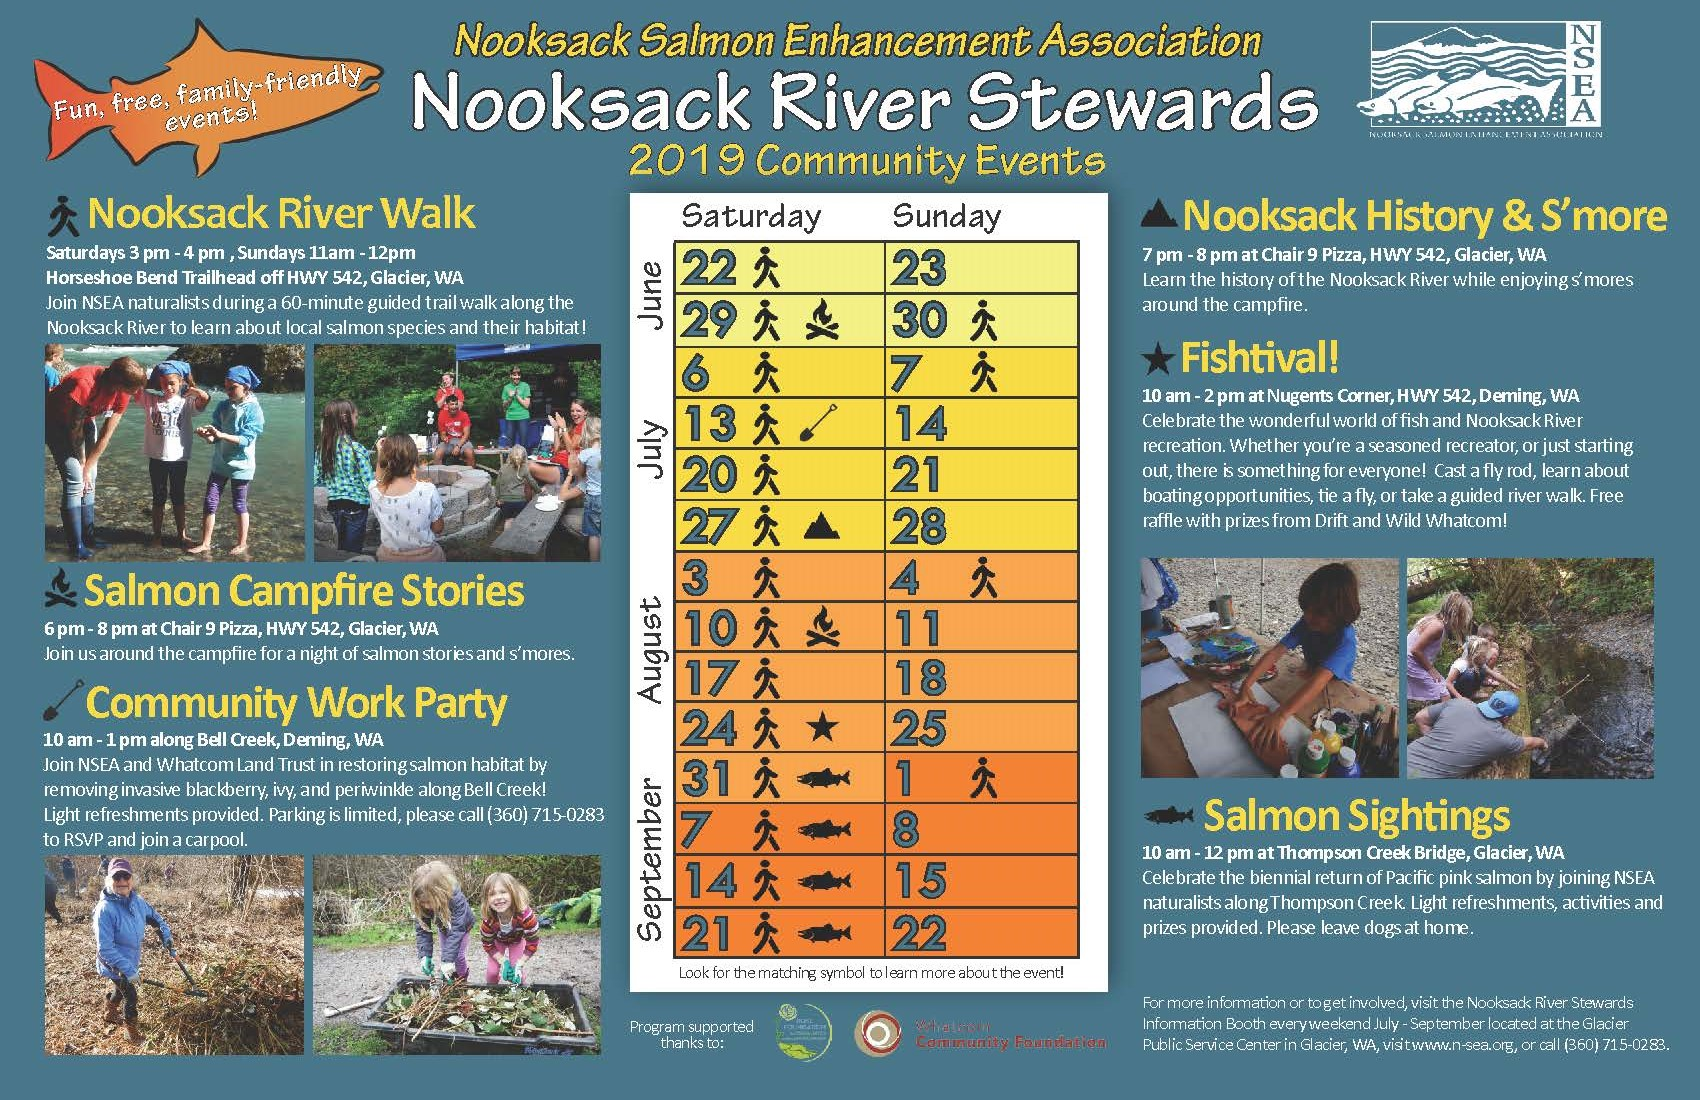 The Nooksack River Stewards Summer Events take place every weekend from June 22nd to Sept 21st. Join us for a free family friendly event!